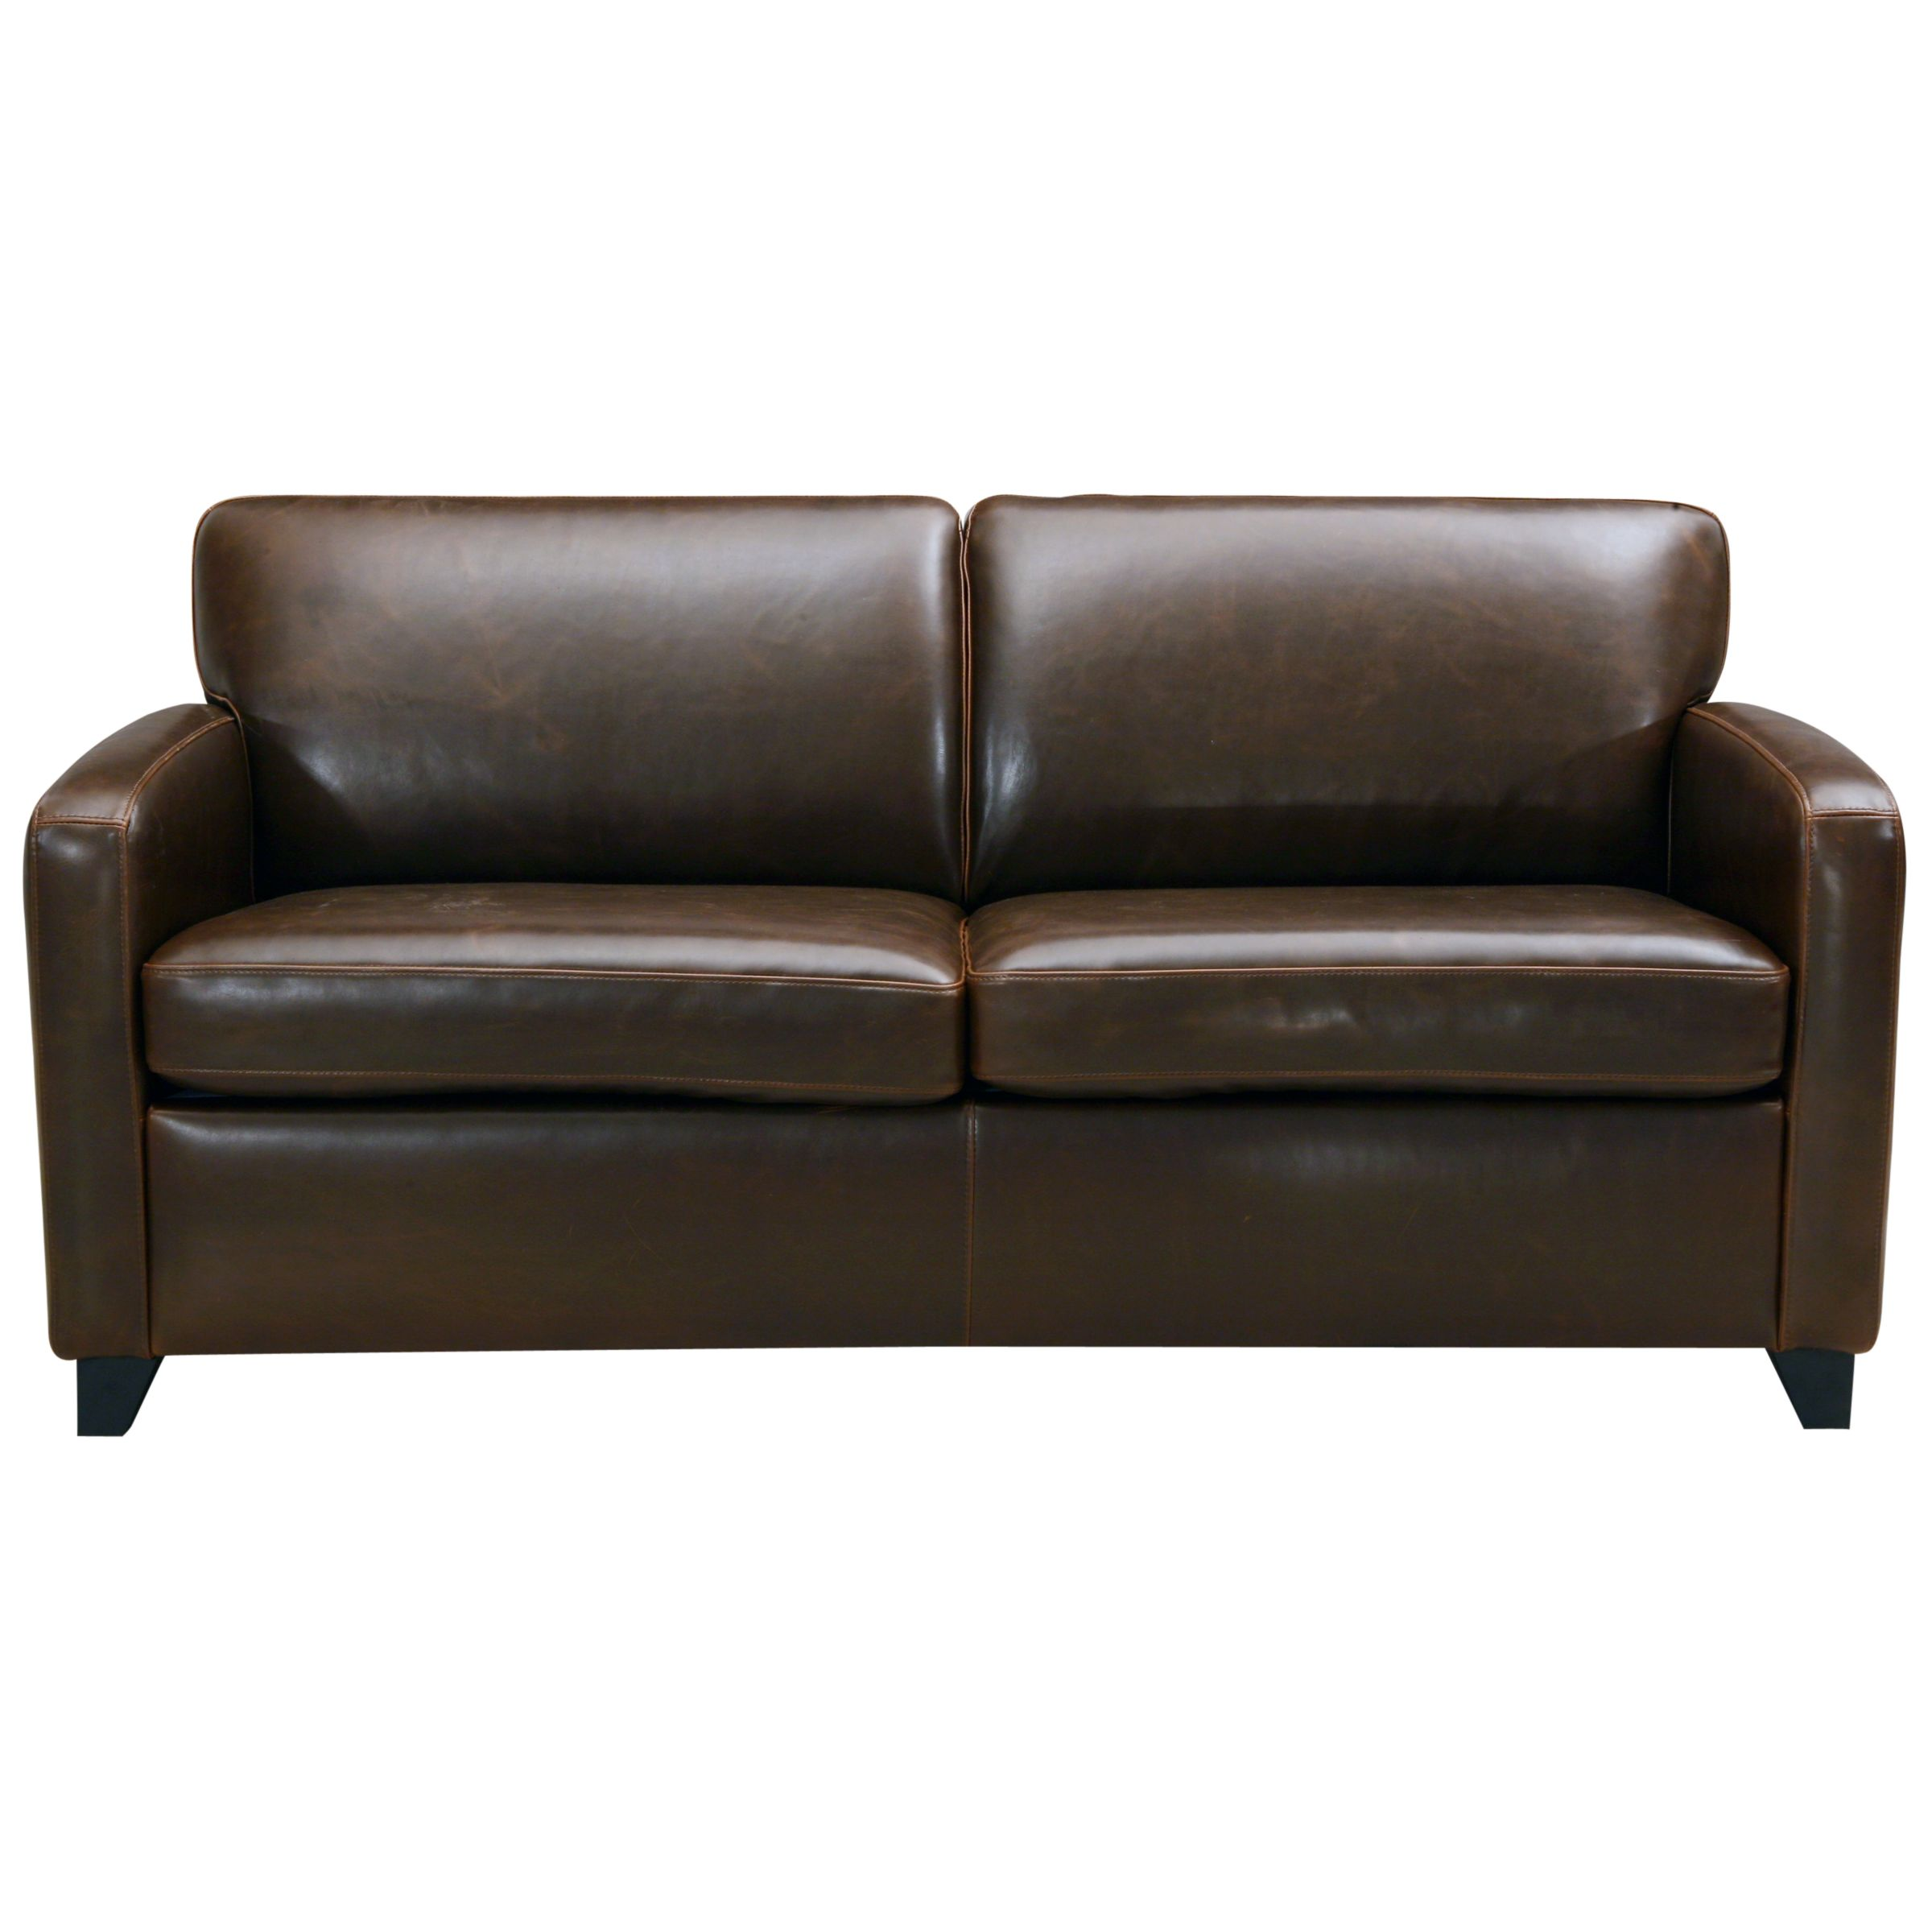 john lewis colby small sofa chocolate. Black Bedroom Furniture Sets. Home Design Ideas